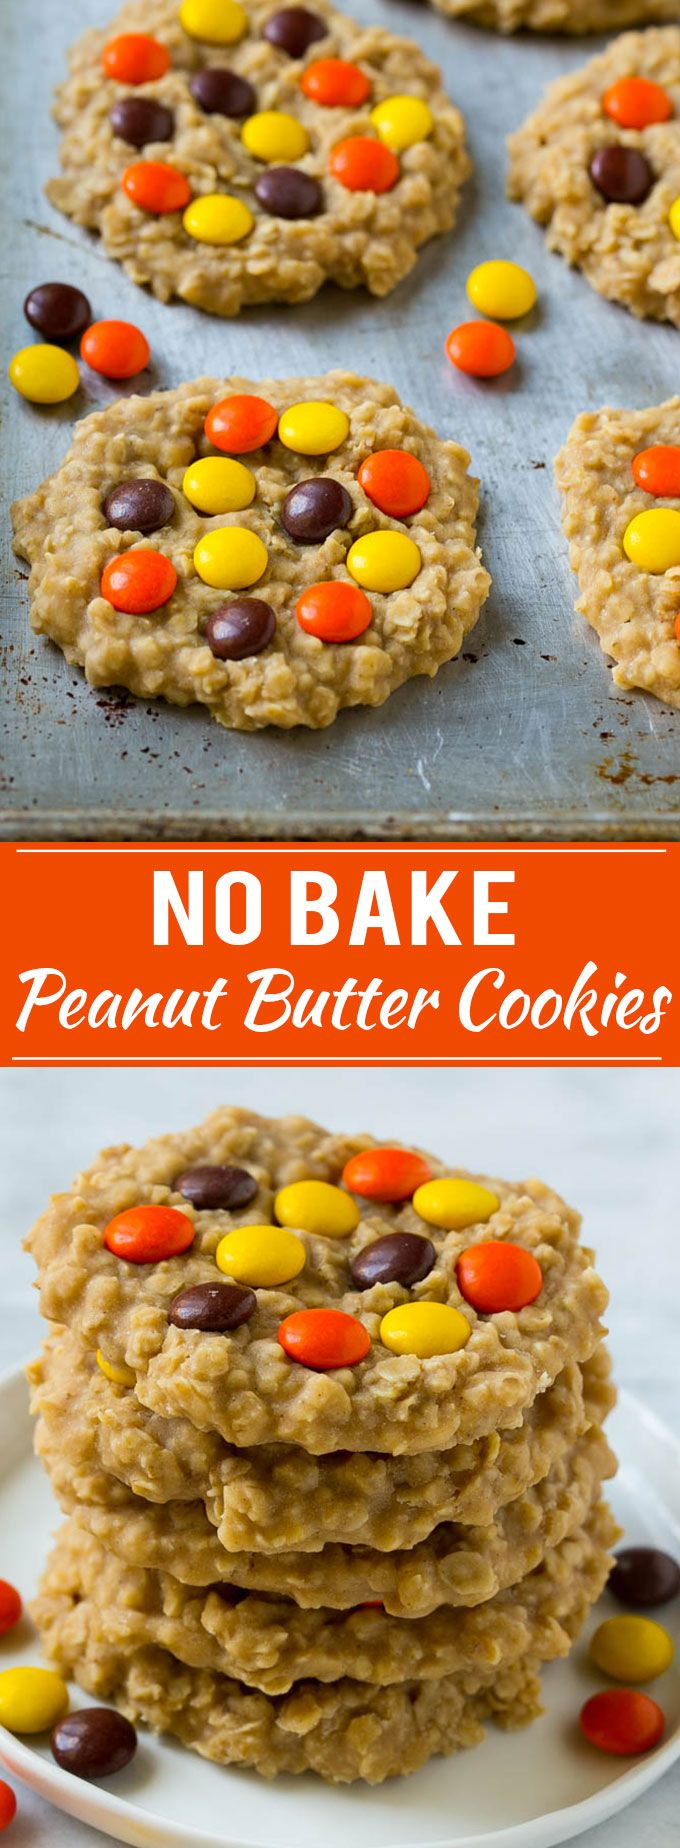 No Bake Peanut Butter oatmeal Cookies with peanut m&ms